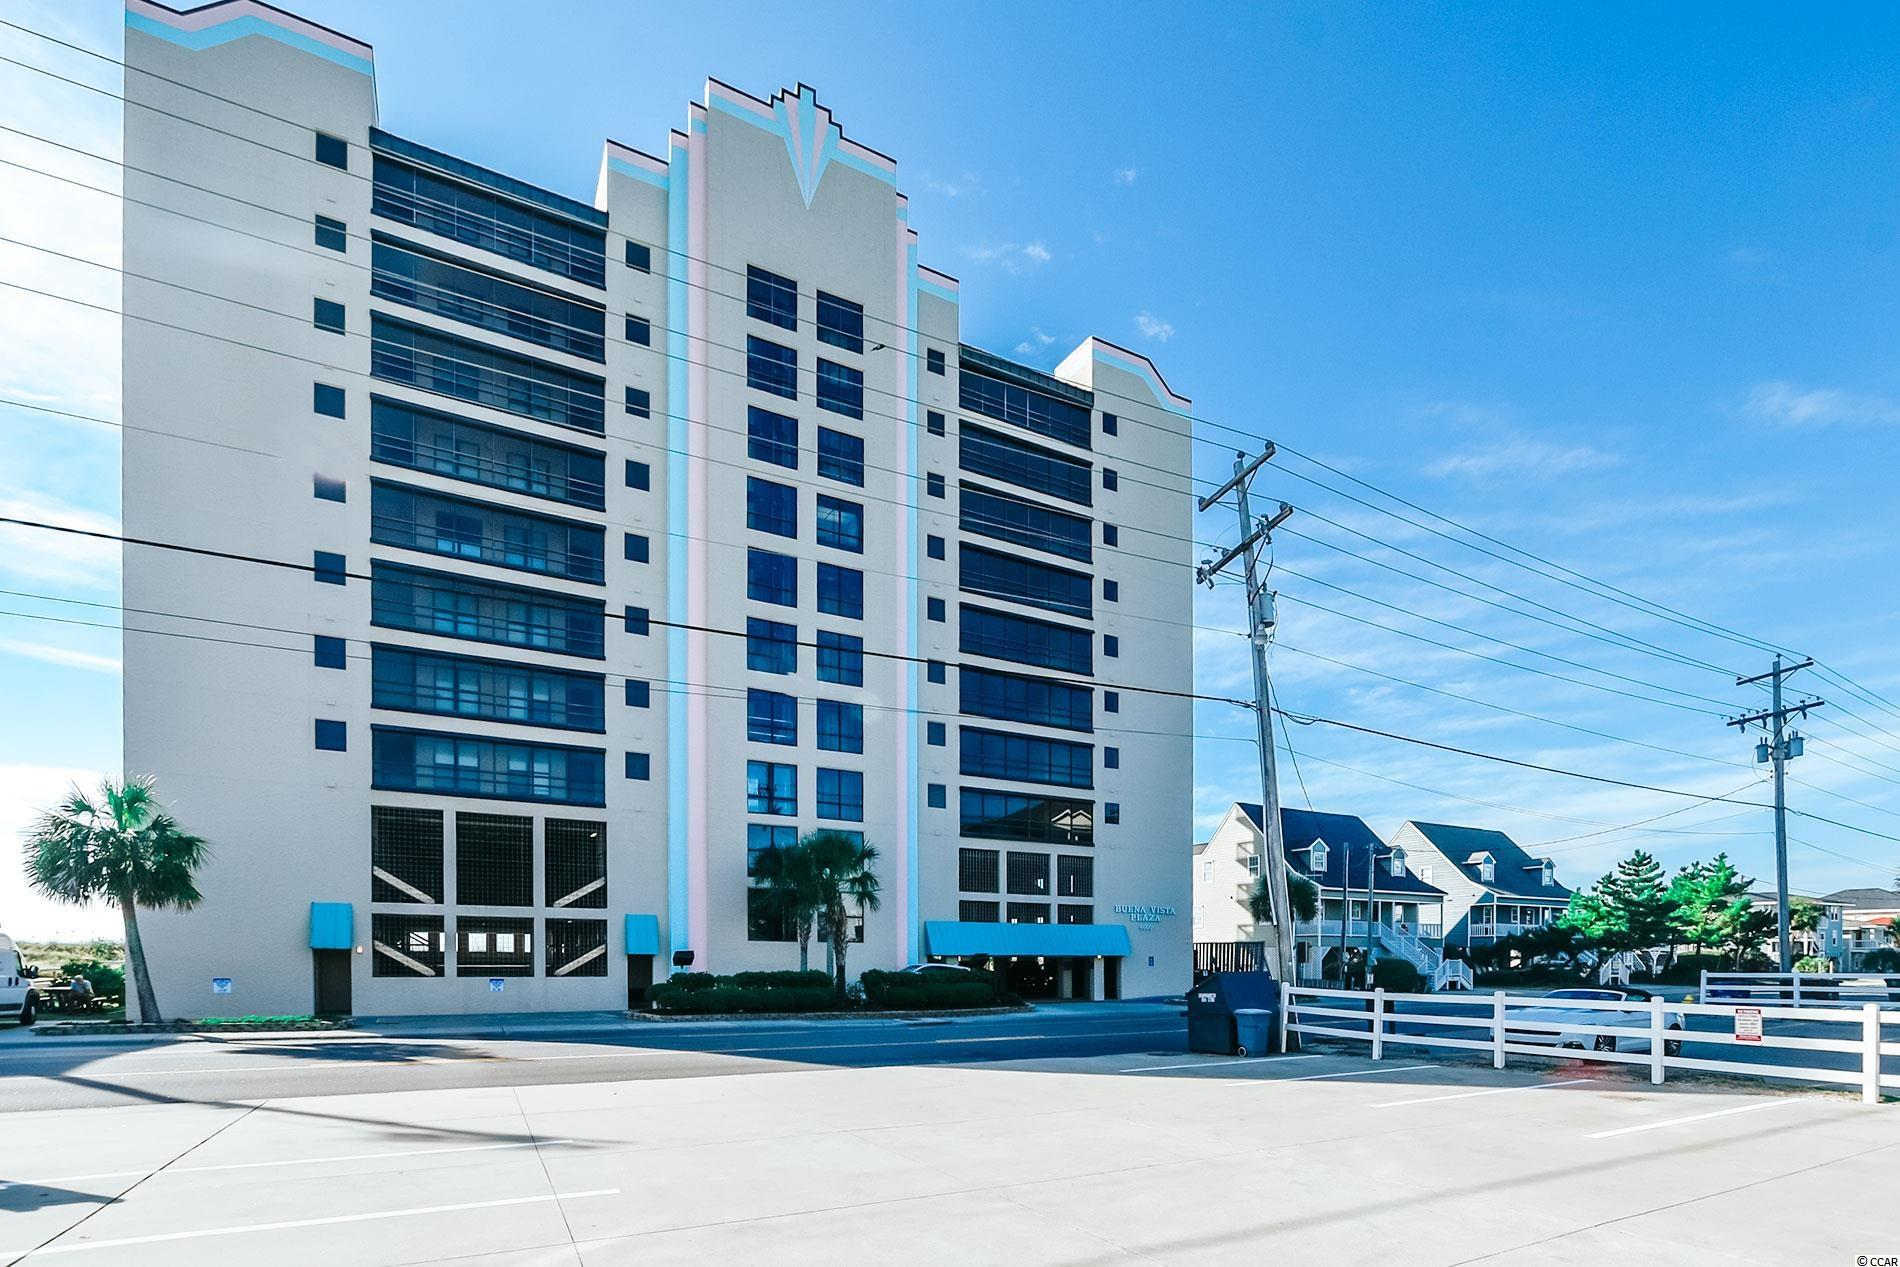 Beautiful Buena Vista 2/2 condo with Excellent oceanfront location in Cherry Grove. Condo features tile floors throughout, updated bathrooms with walk in tiled showers, and an updated kitchen with granite and tile backsplash HVAC was replaced in 2019, new mattresses 2020 on both beds and pullout sofa, and new chairs in living area. Storage locker for your Beach Chairs and Pool Toys located on the 4th floor.  Sold completely furnished for you and your family to enjoy, or use for rental income. Great Rental Property!